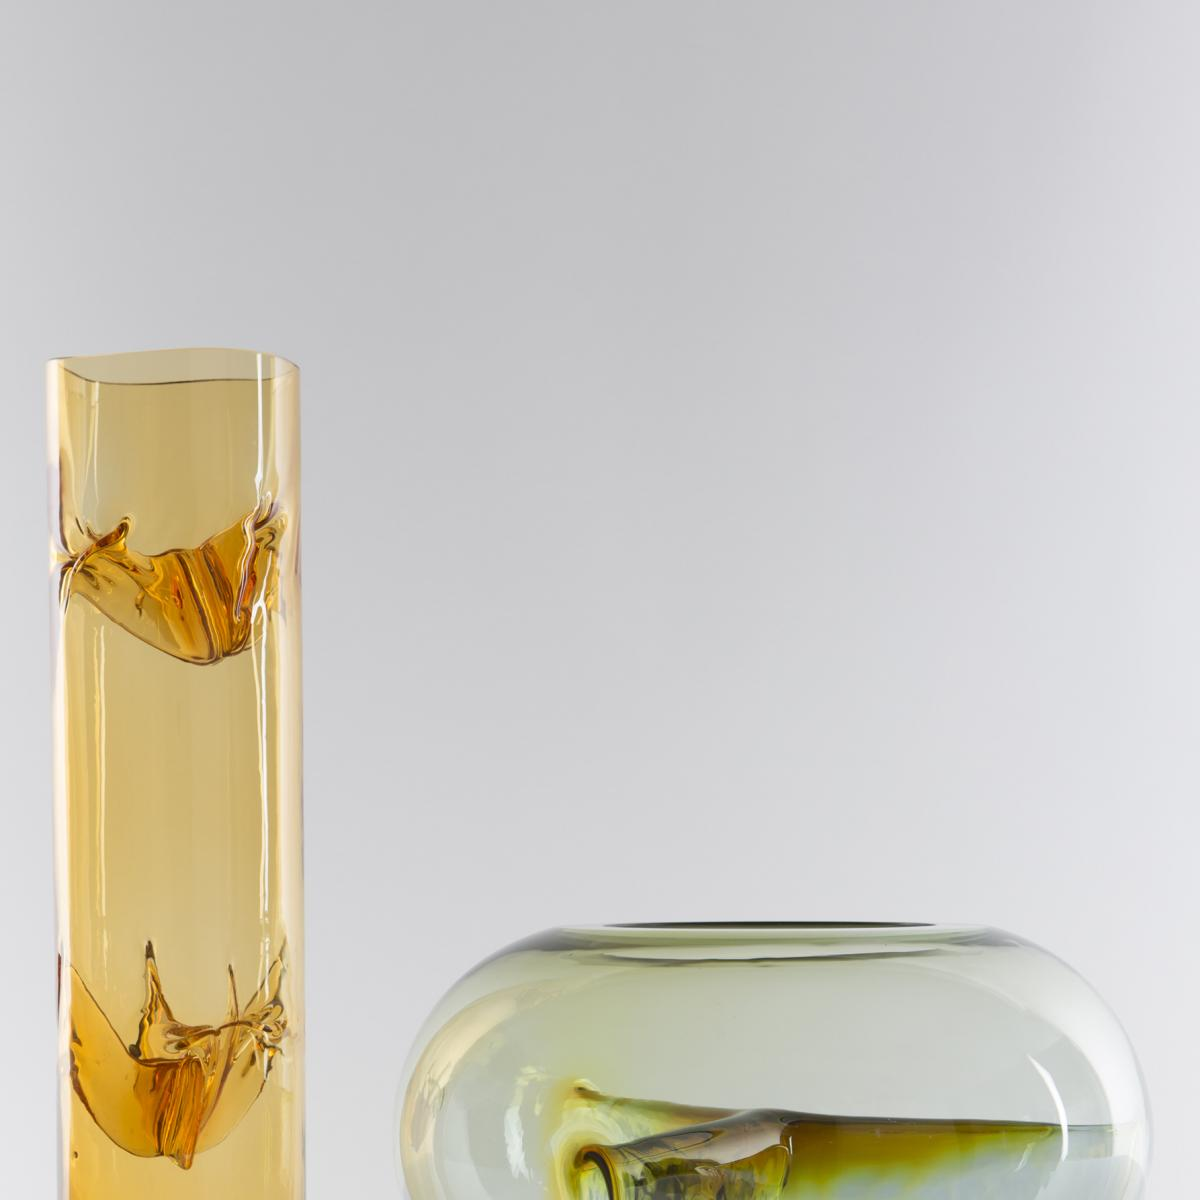 Murano Glass Quot Membrane Quot Vase By Toni Zuccheri For Veart